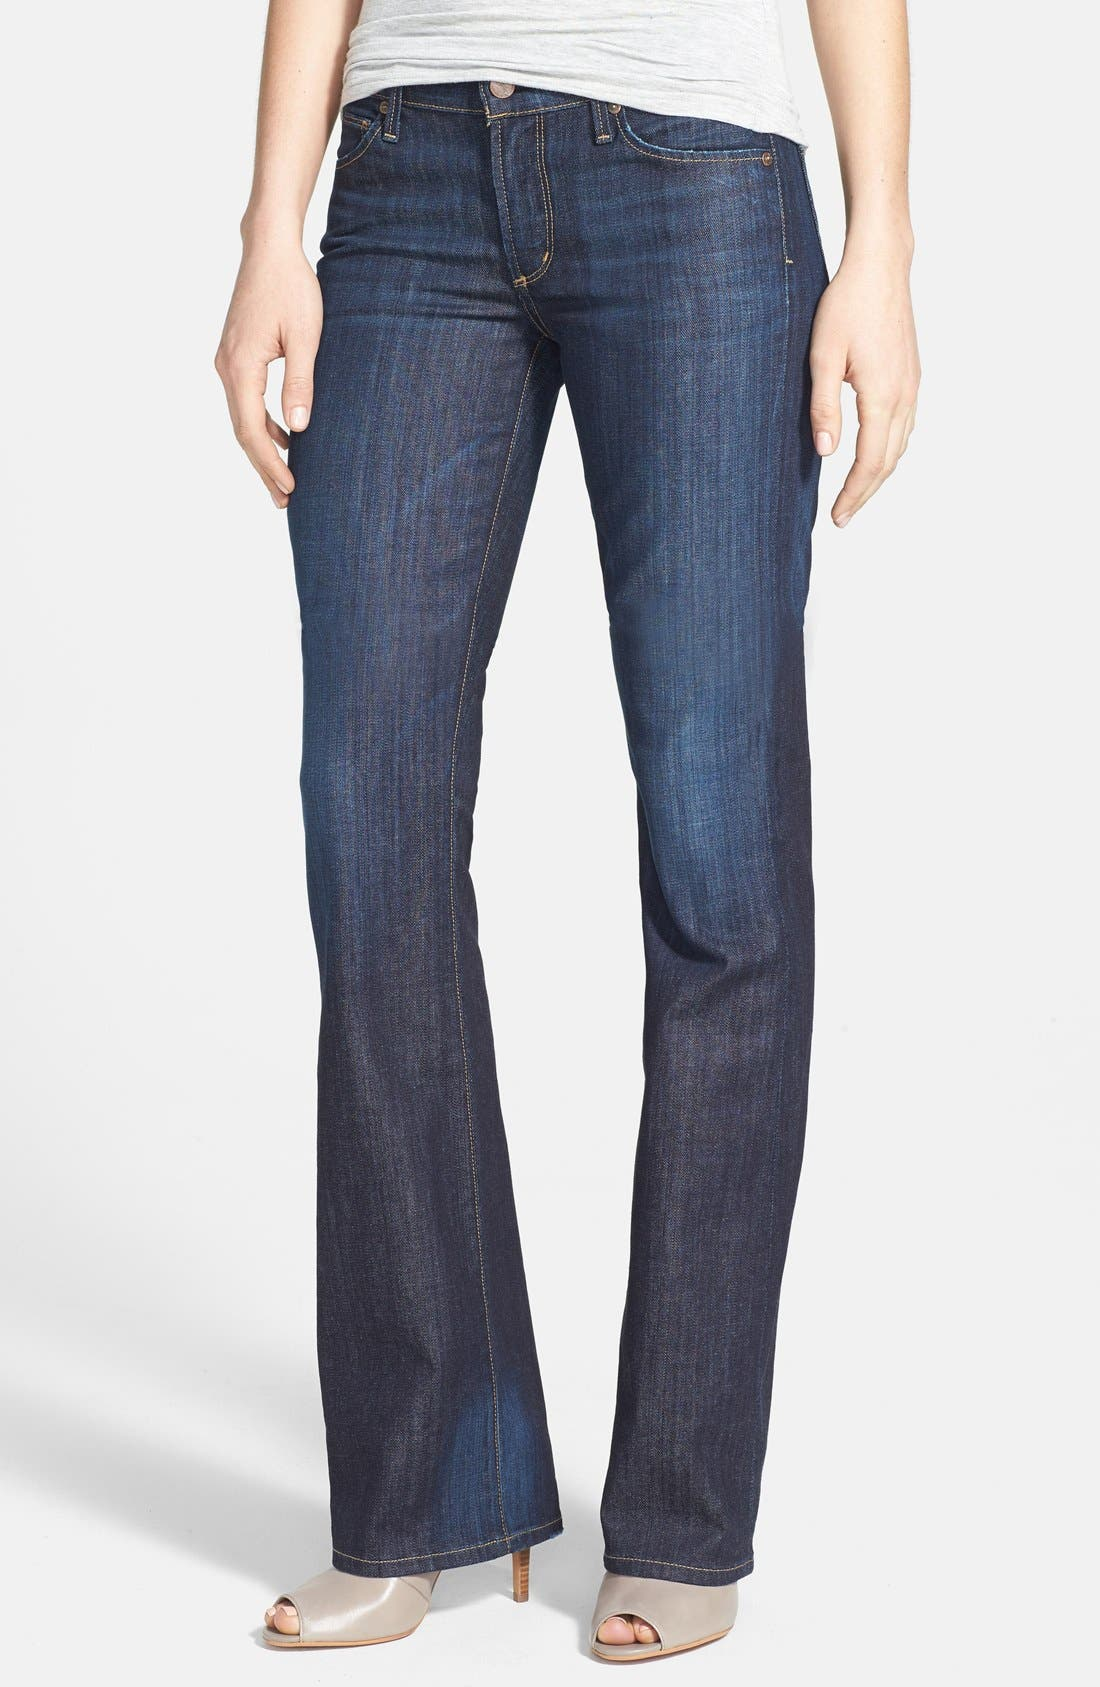 Alternate Image 1 Selected - Citizens of Humanity 'Kelly' Bootcut Stretch Jeans (New Pacific)